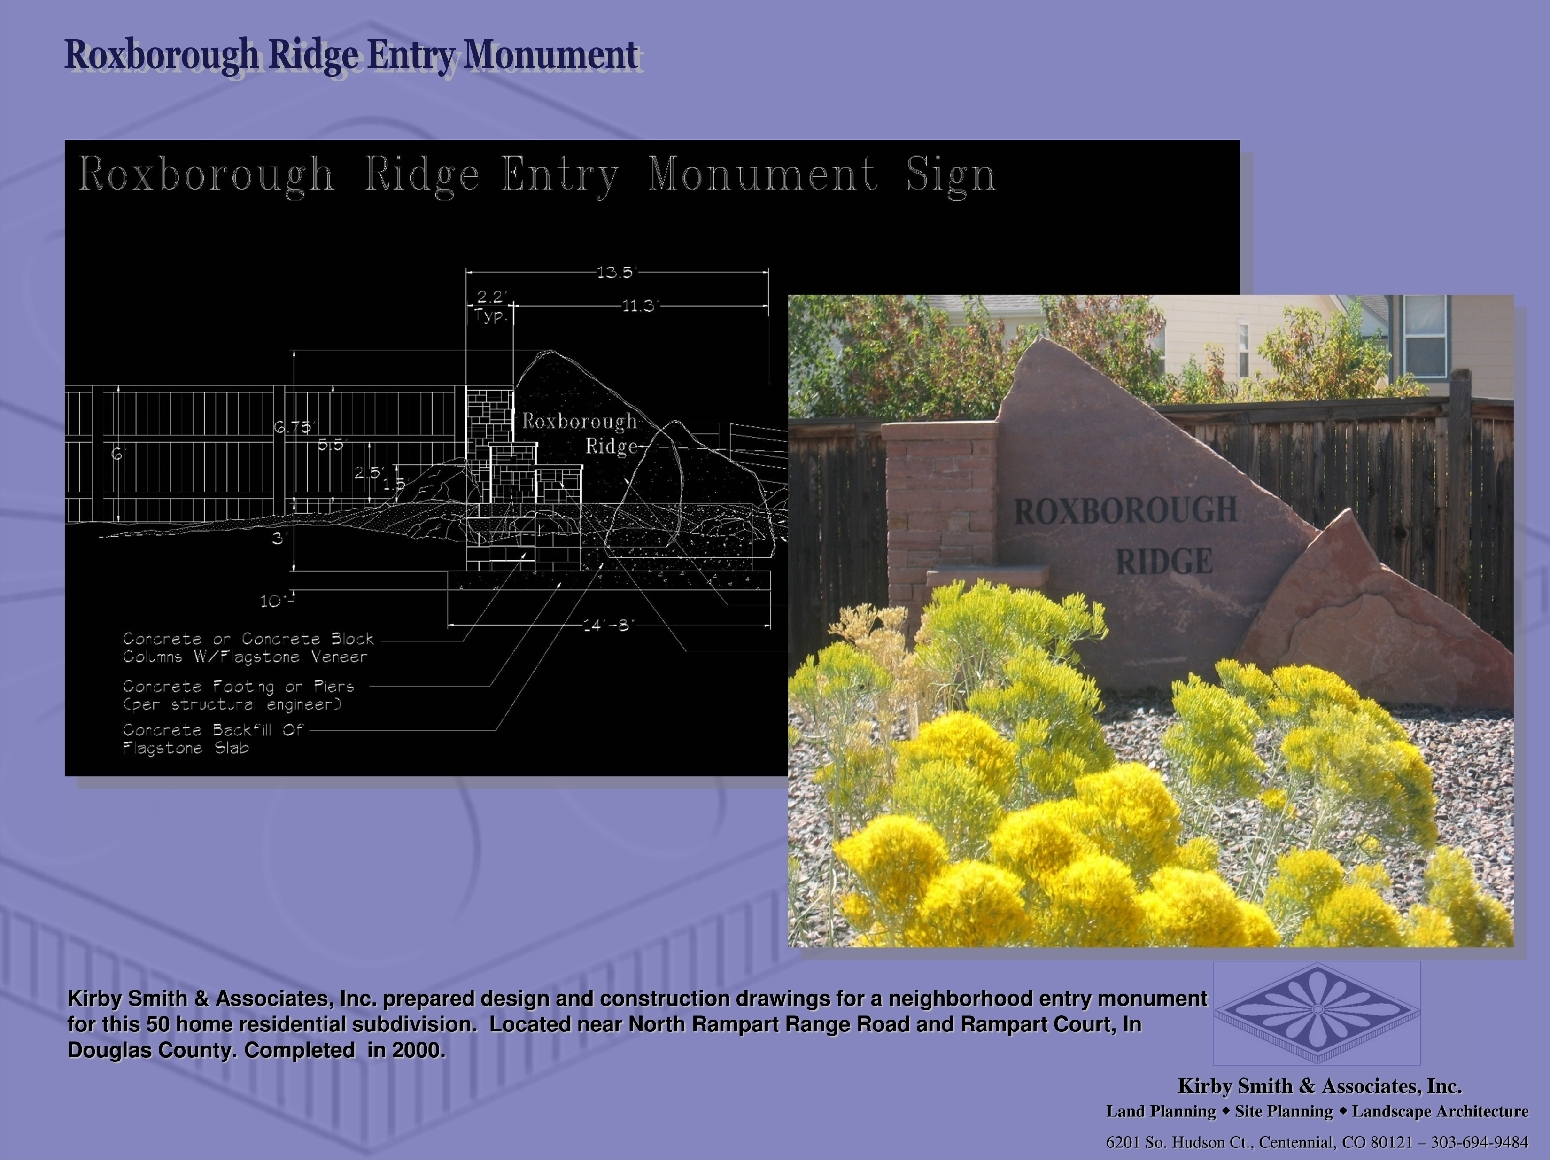 Kirby Smith & Associates, Inc. prepared design and construction drawings for a neighborhood entry monument  for this 50 home residential subdivision.  Located near North Rampart Range Road and Rampart Court, In Douglas County. Completed  in 2000.